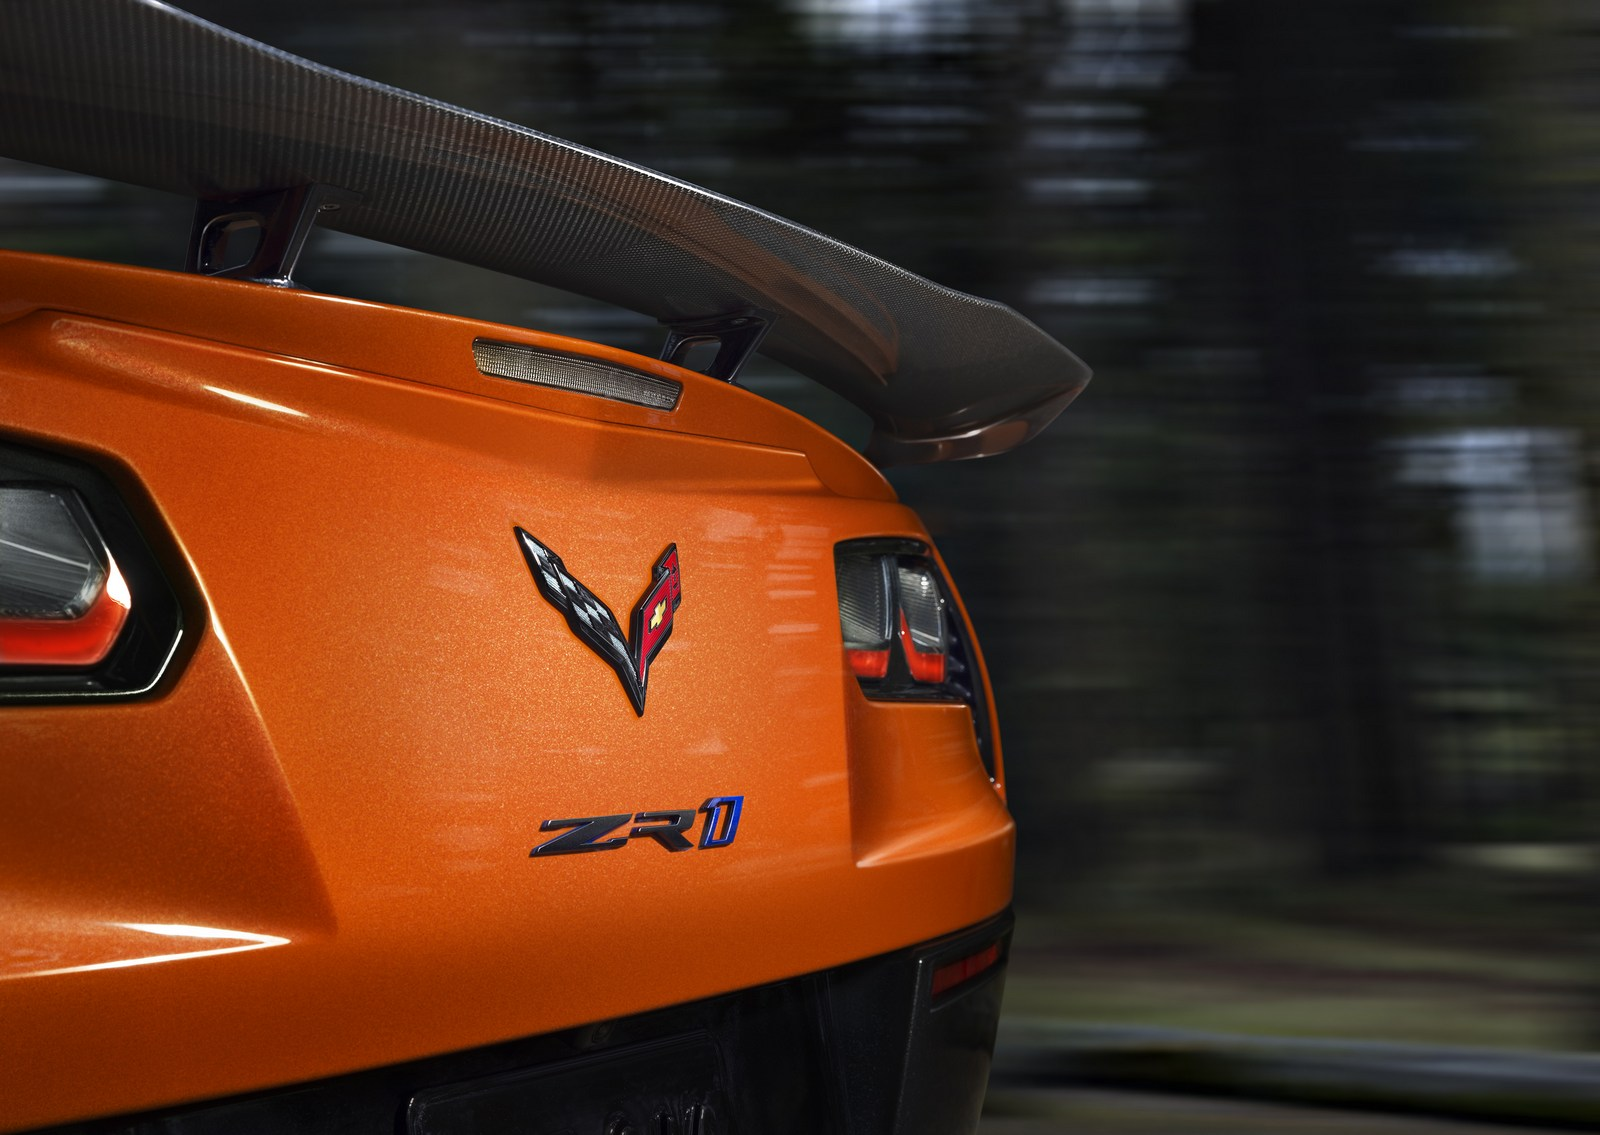 Mid-Engined 2019 Chevrolet Corvette (C8) to Debut at 2018